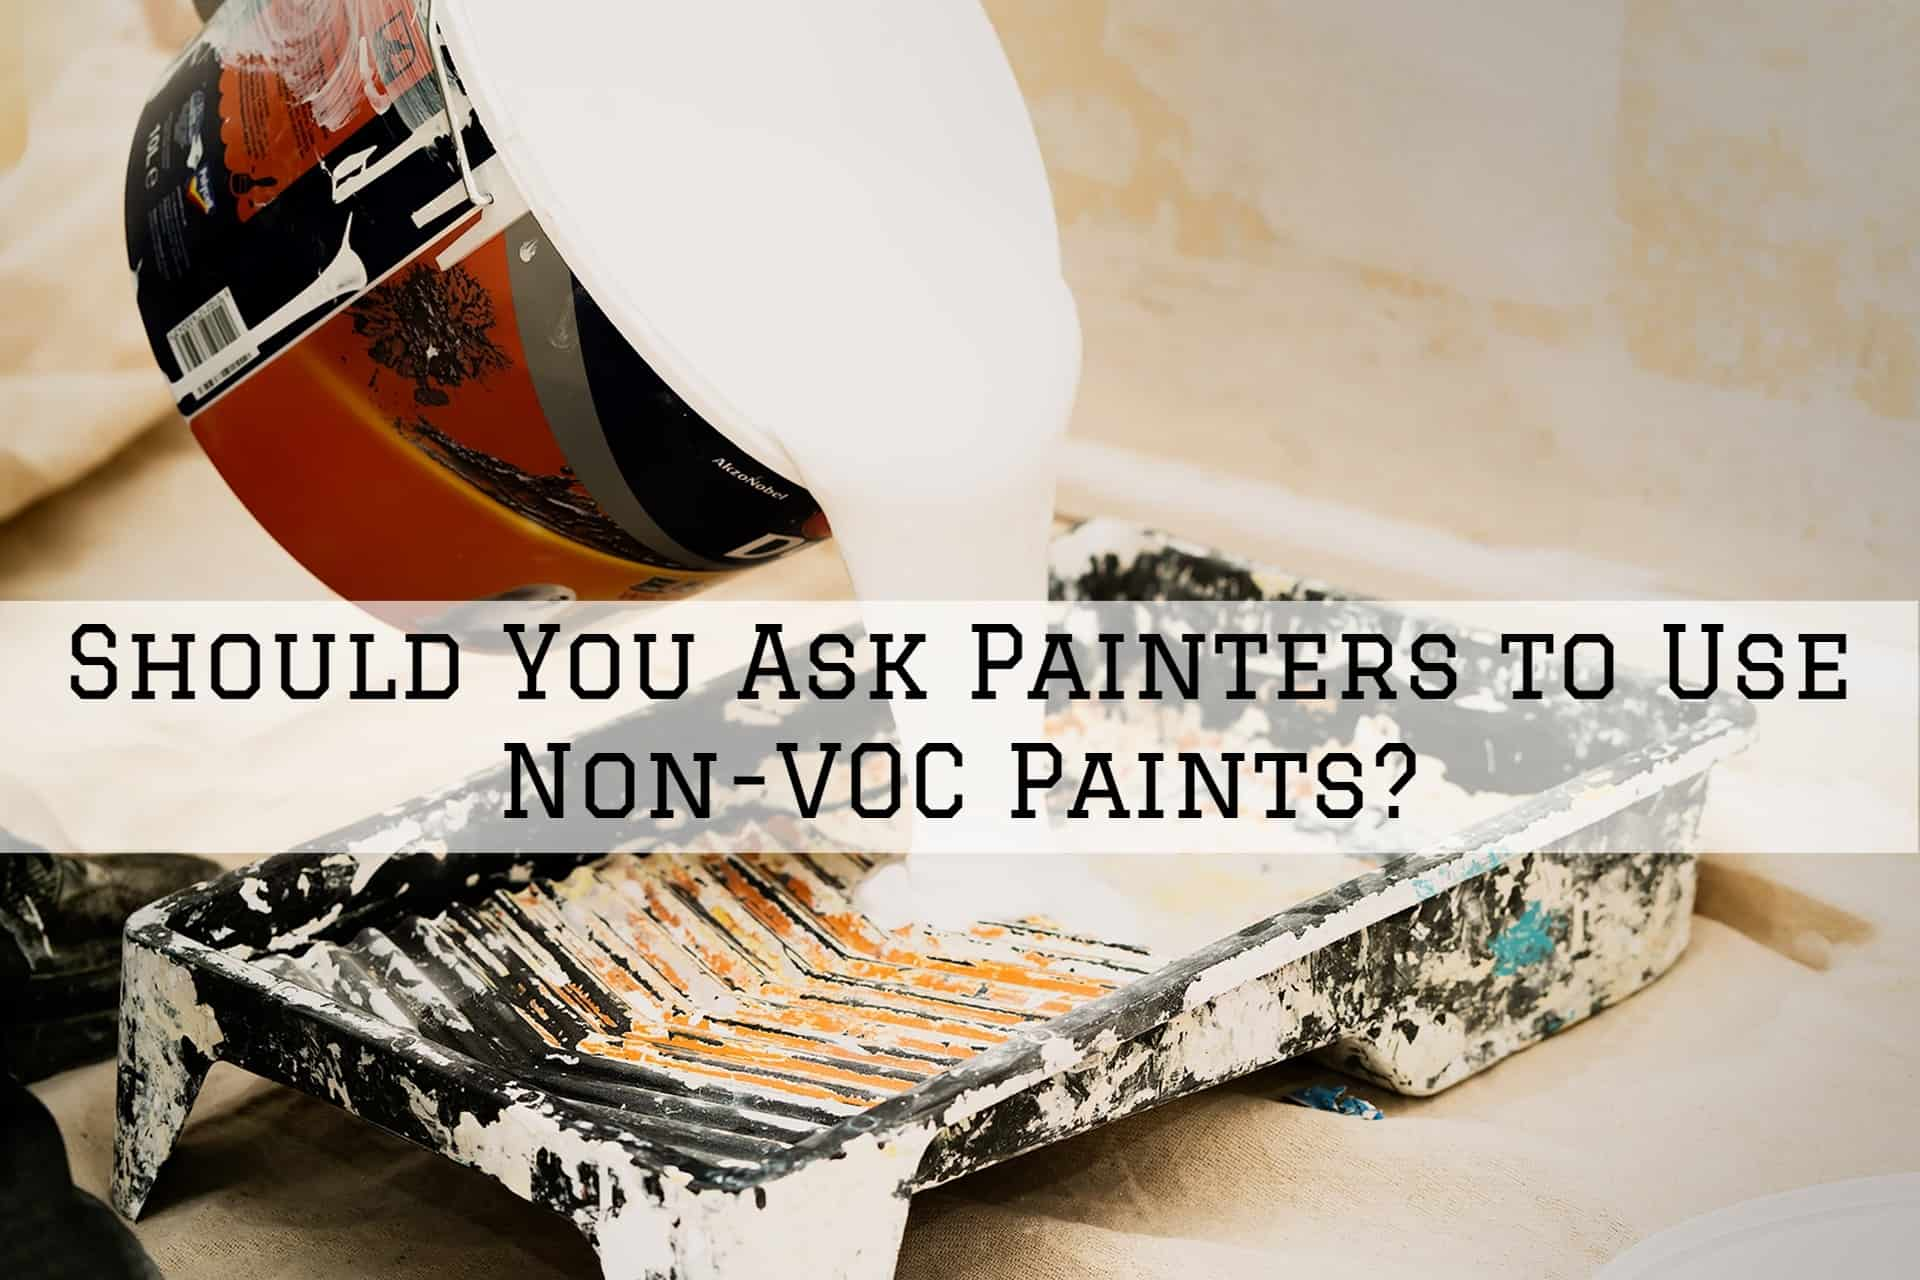 Non-VOC paints